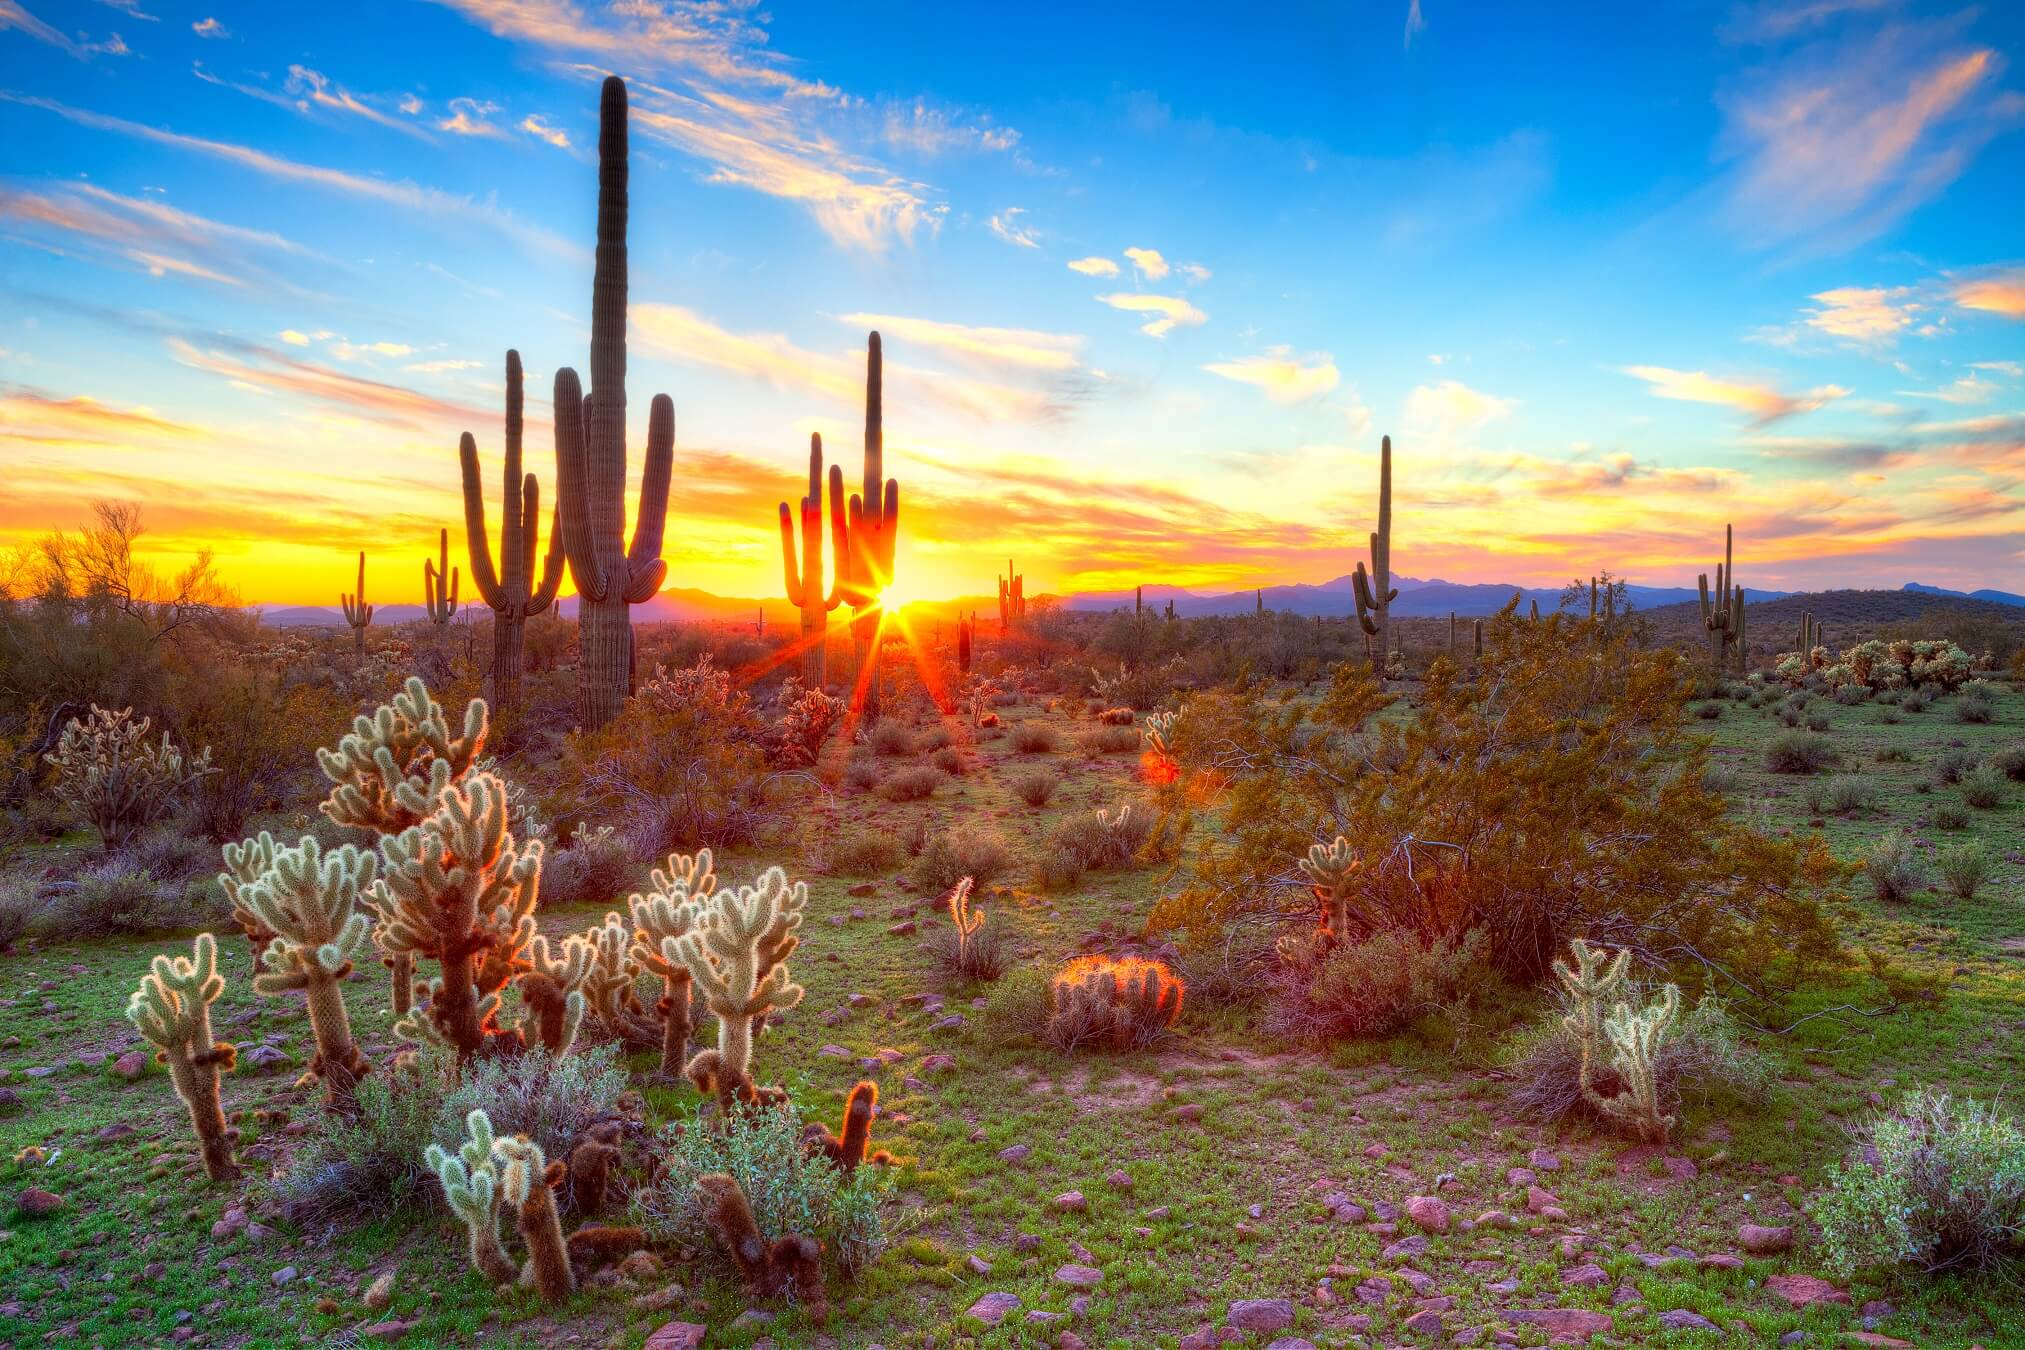 Pictures of Arizona don't get more beautiful than this colorful desert shot.